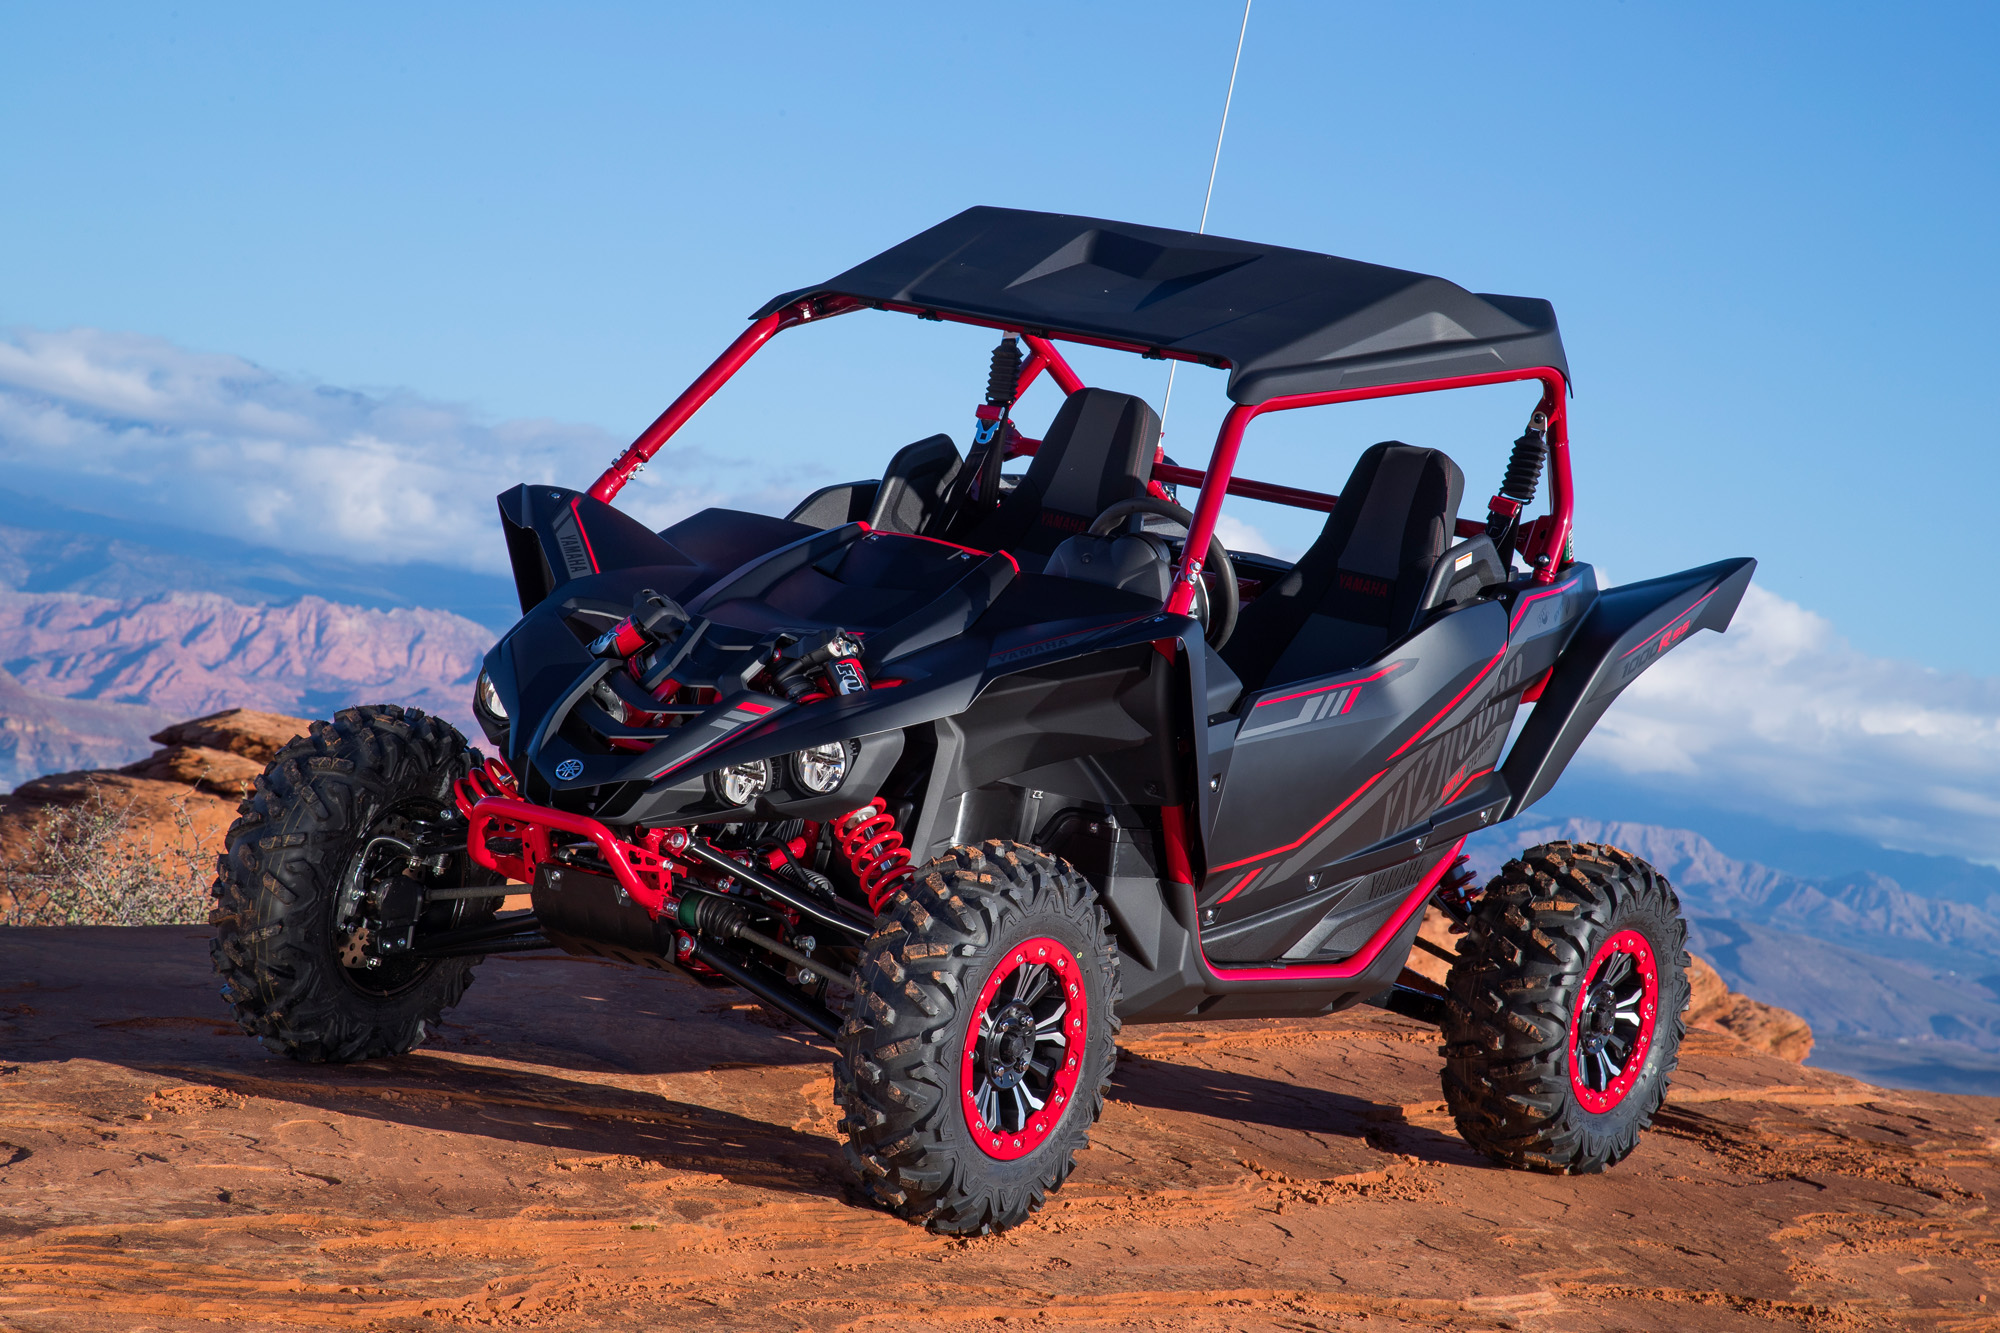 2017 yamaha yxz1000r ss special edition test with video for 2017 yamaha yxz1000r ss price